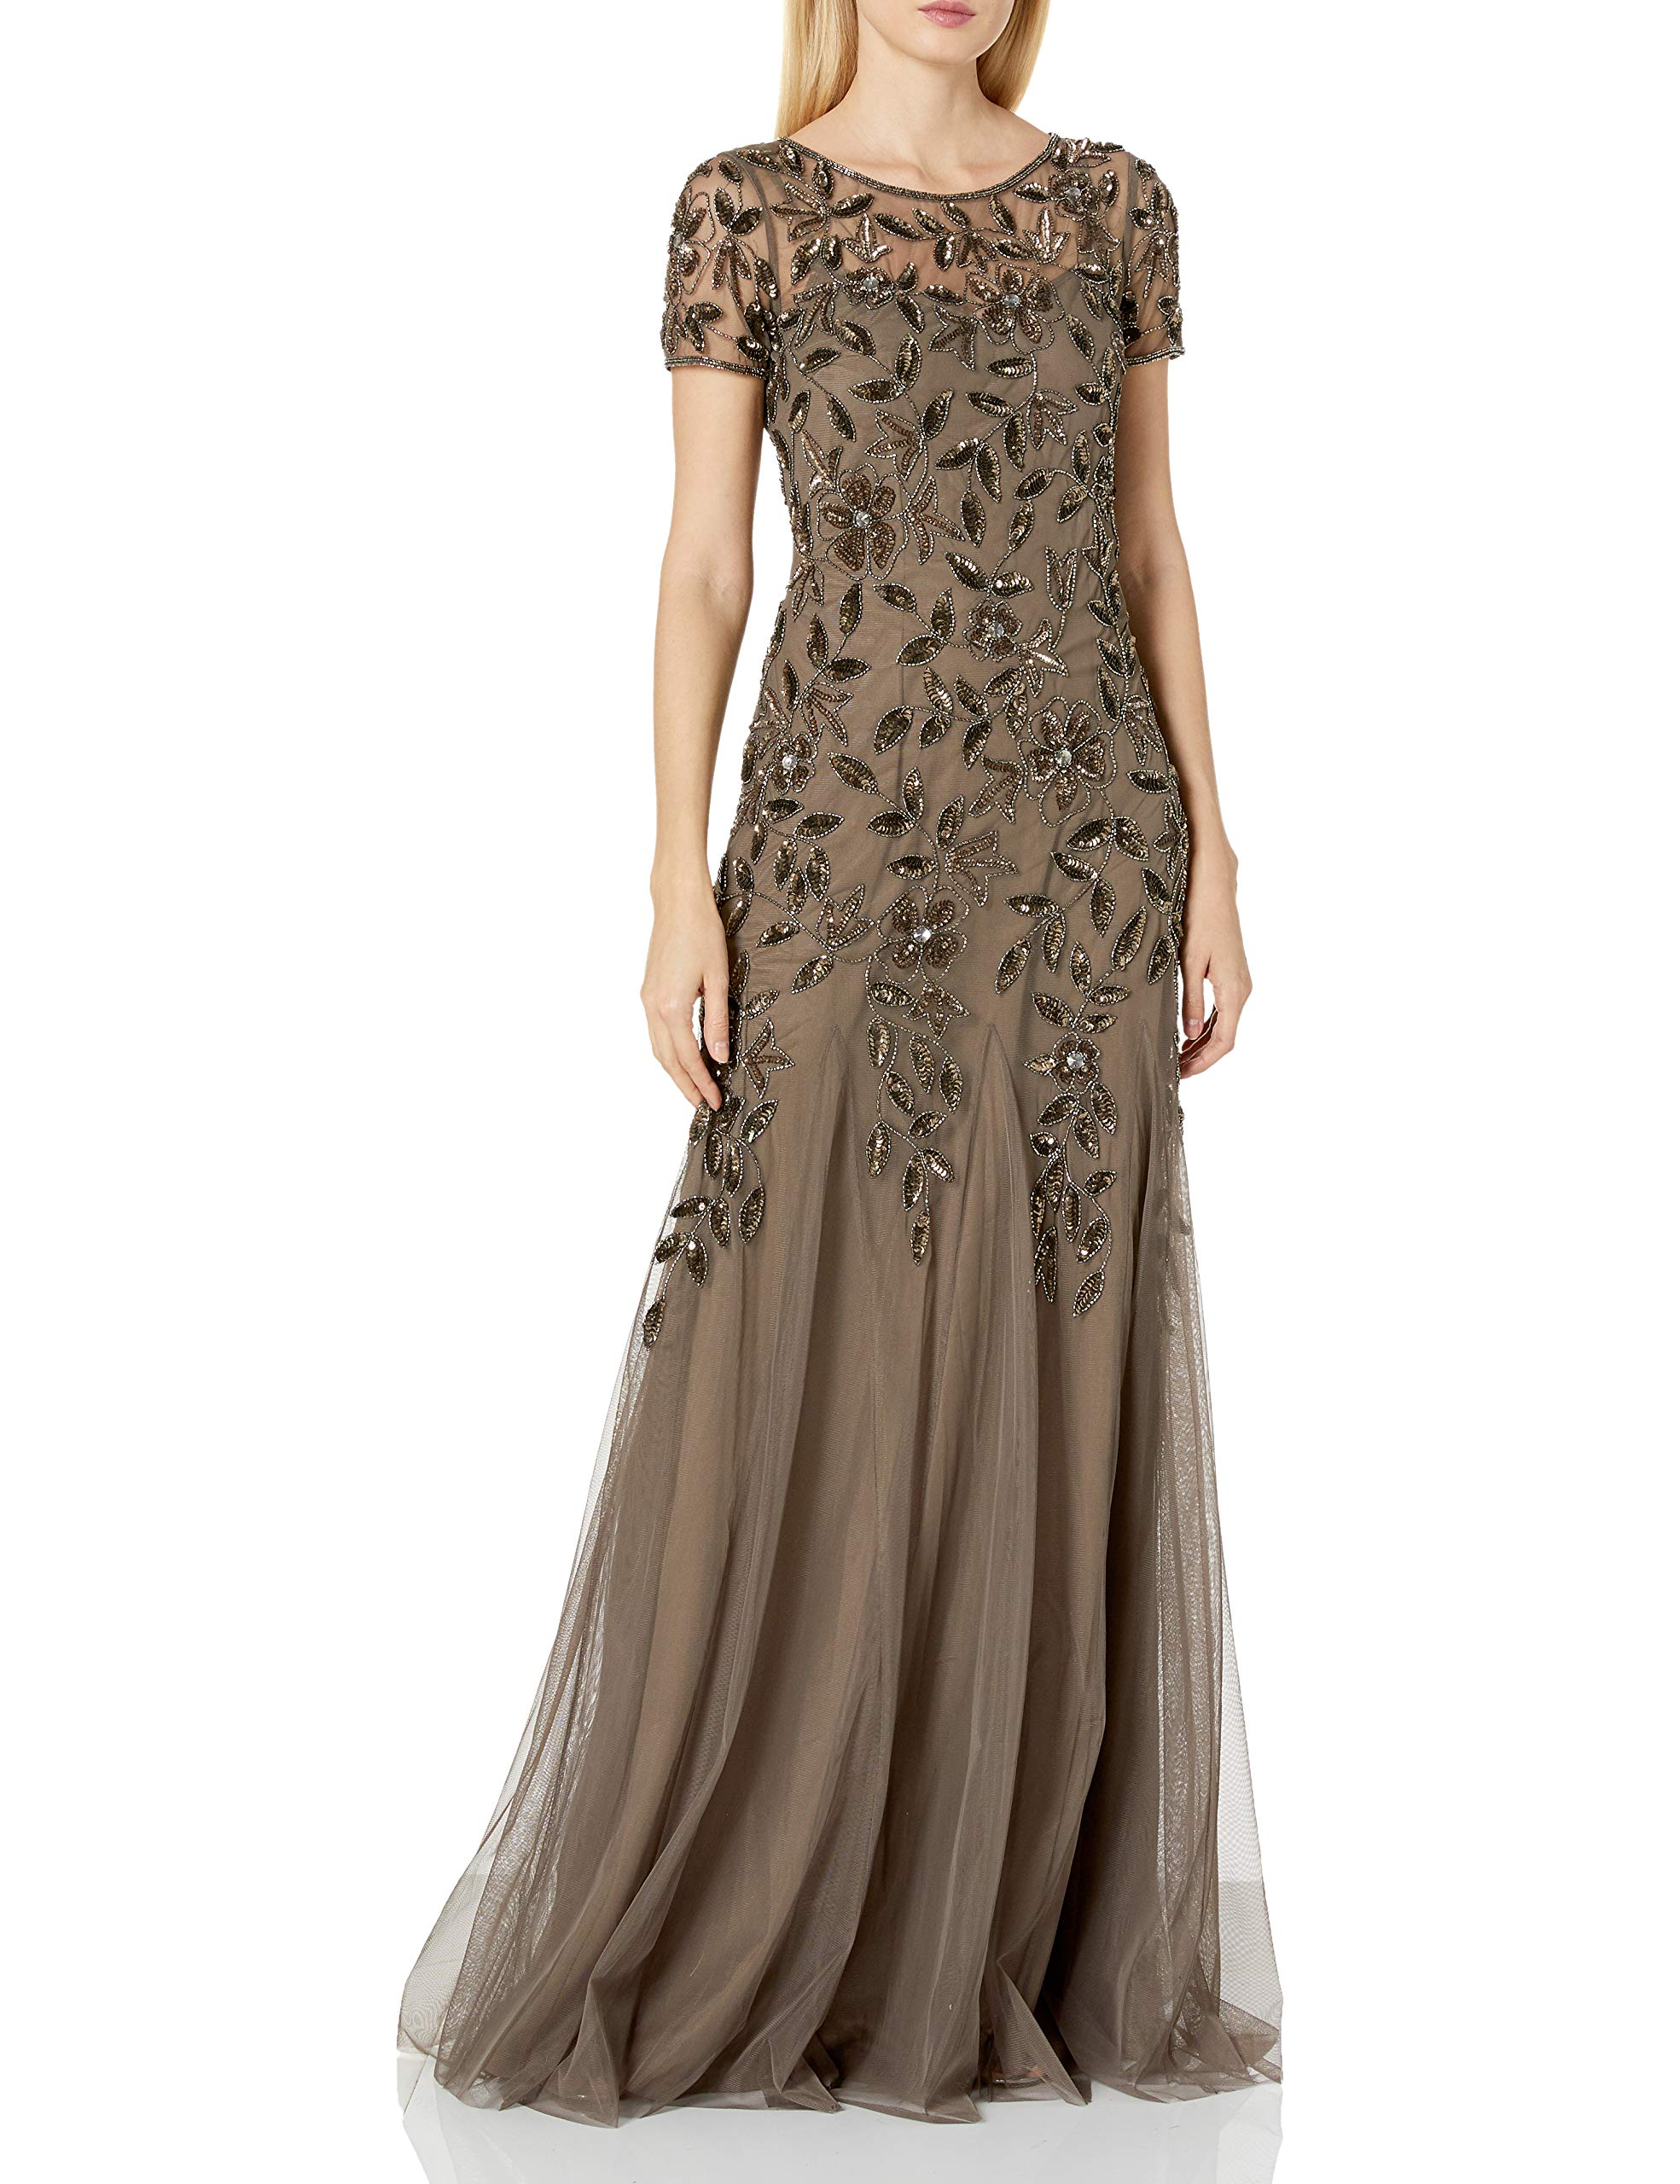 Mother Of The Bride Dresses - Women's Floral Beaded Godet Gown